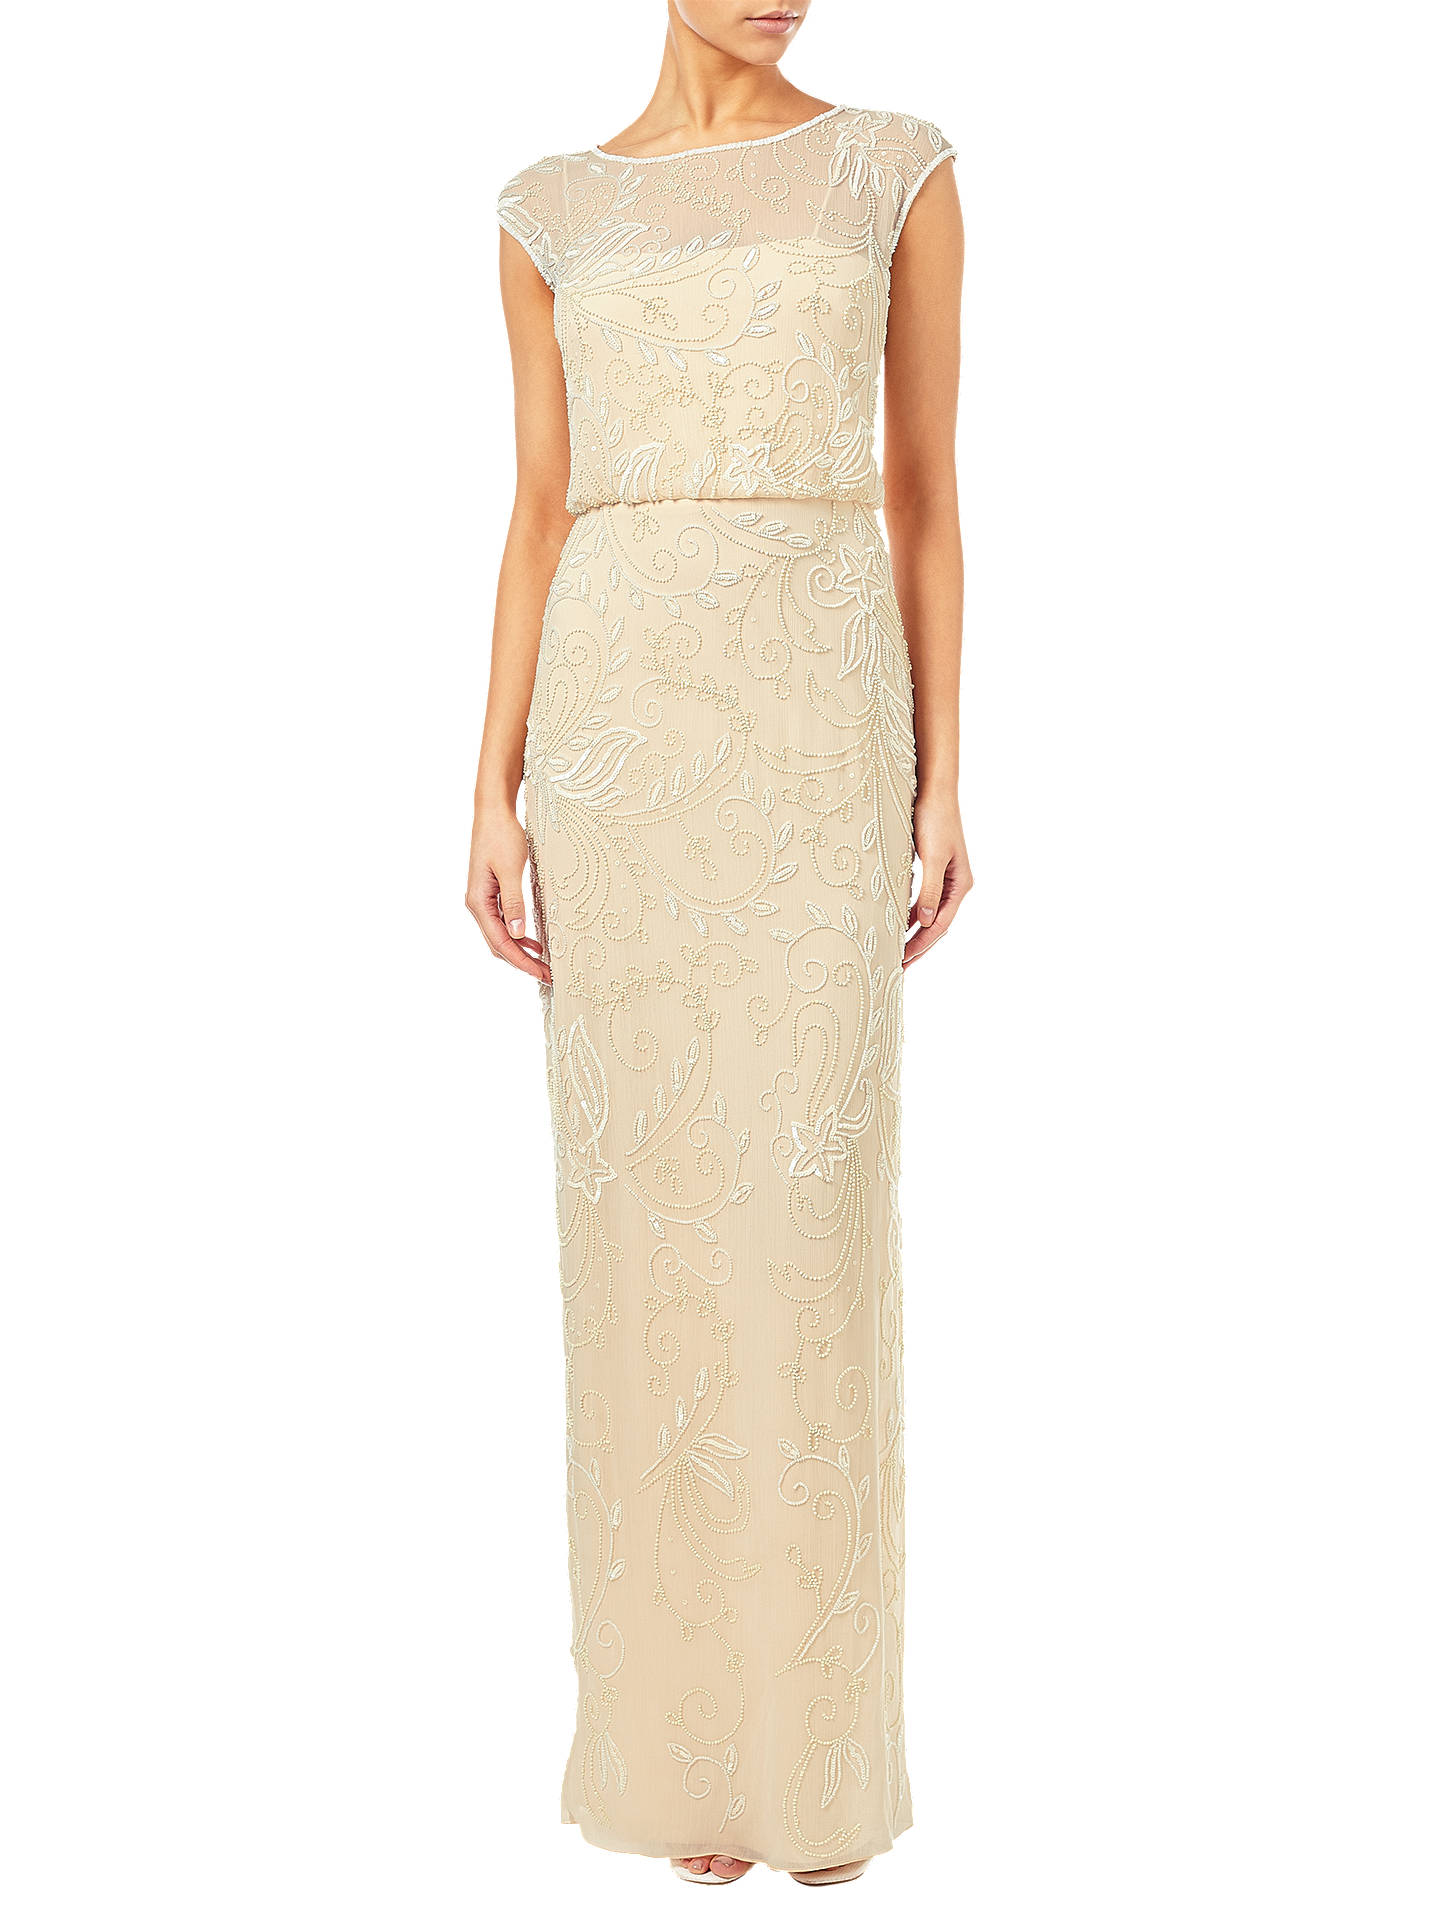 Adrianna Papell Cap Sleeve Beaded Gown, Champagne at John Lewis ...